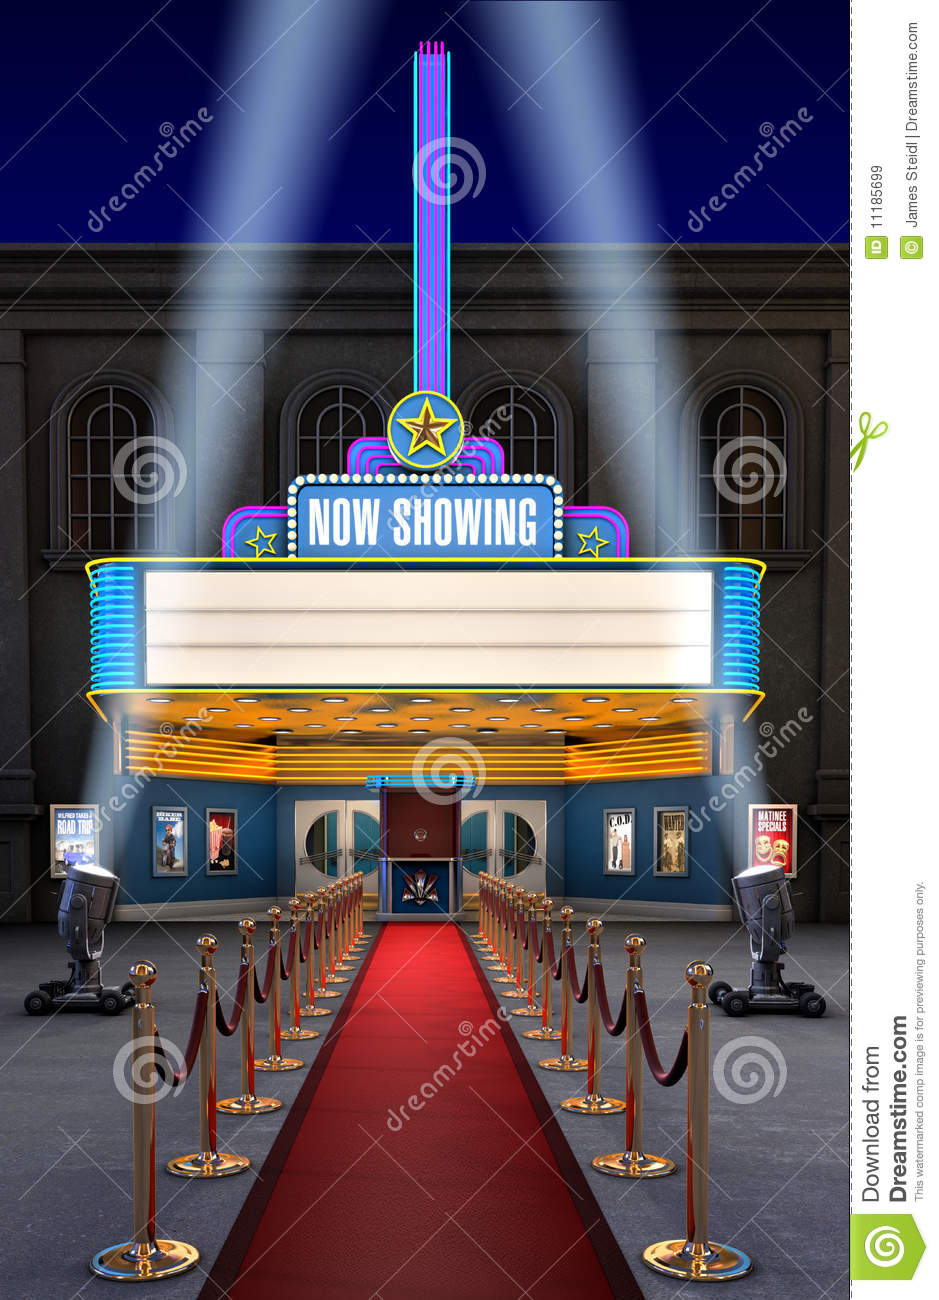 Movie Theatre   Ticket Box Royalty Free Stock Images   Image  11185699